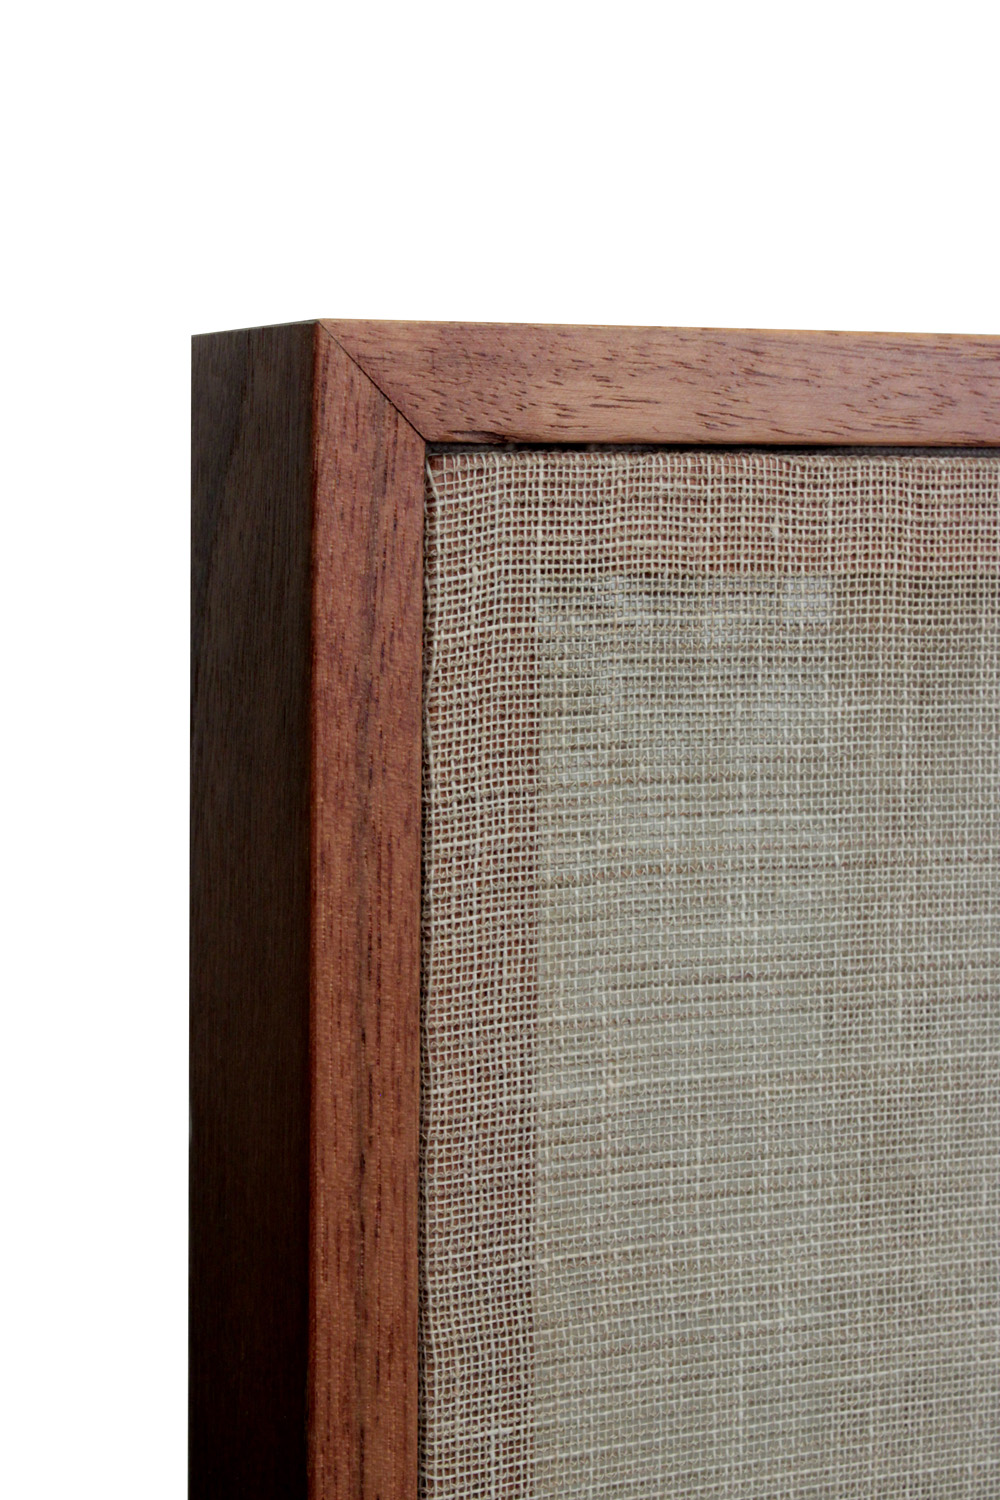 Hayes 75 90's walnut sheer linen 2x screens16 detail3 hires.jpg